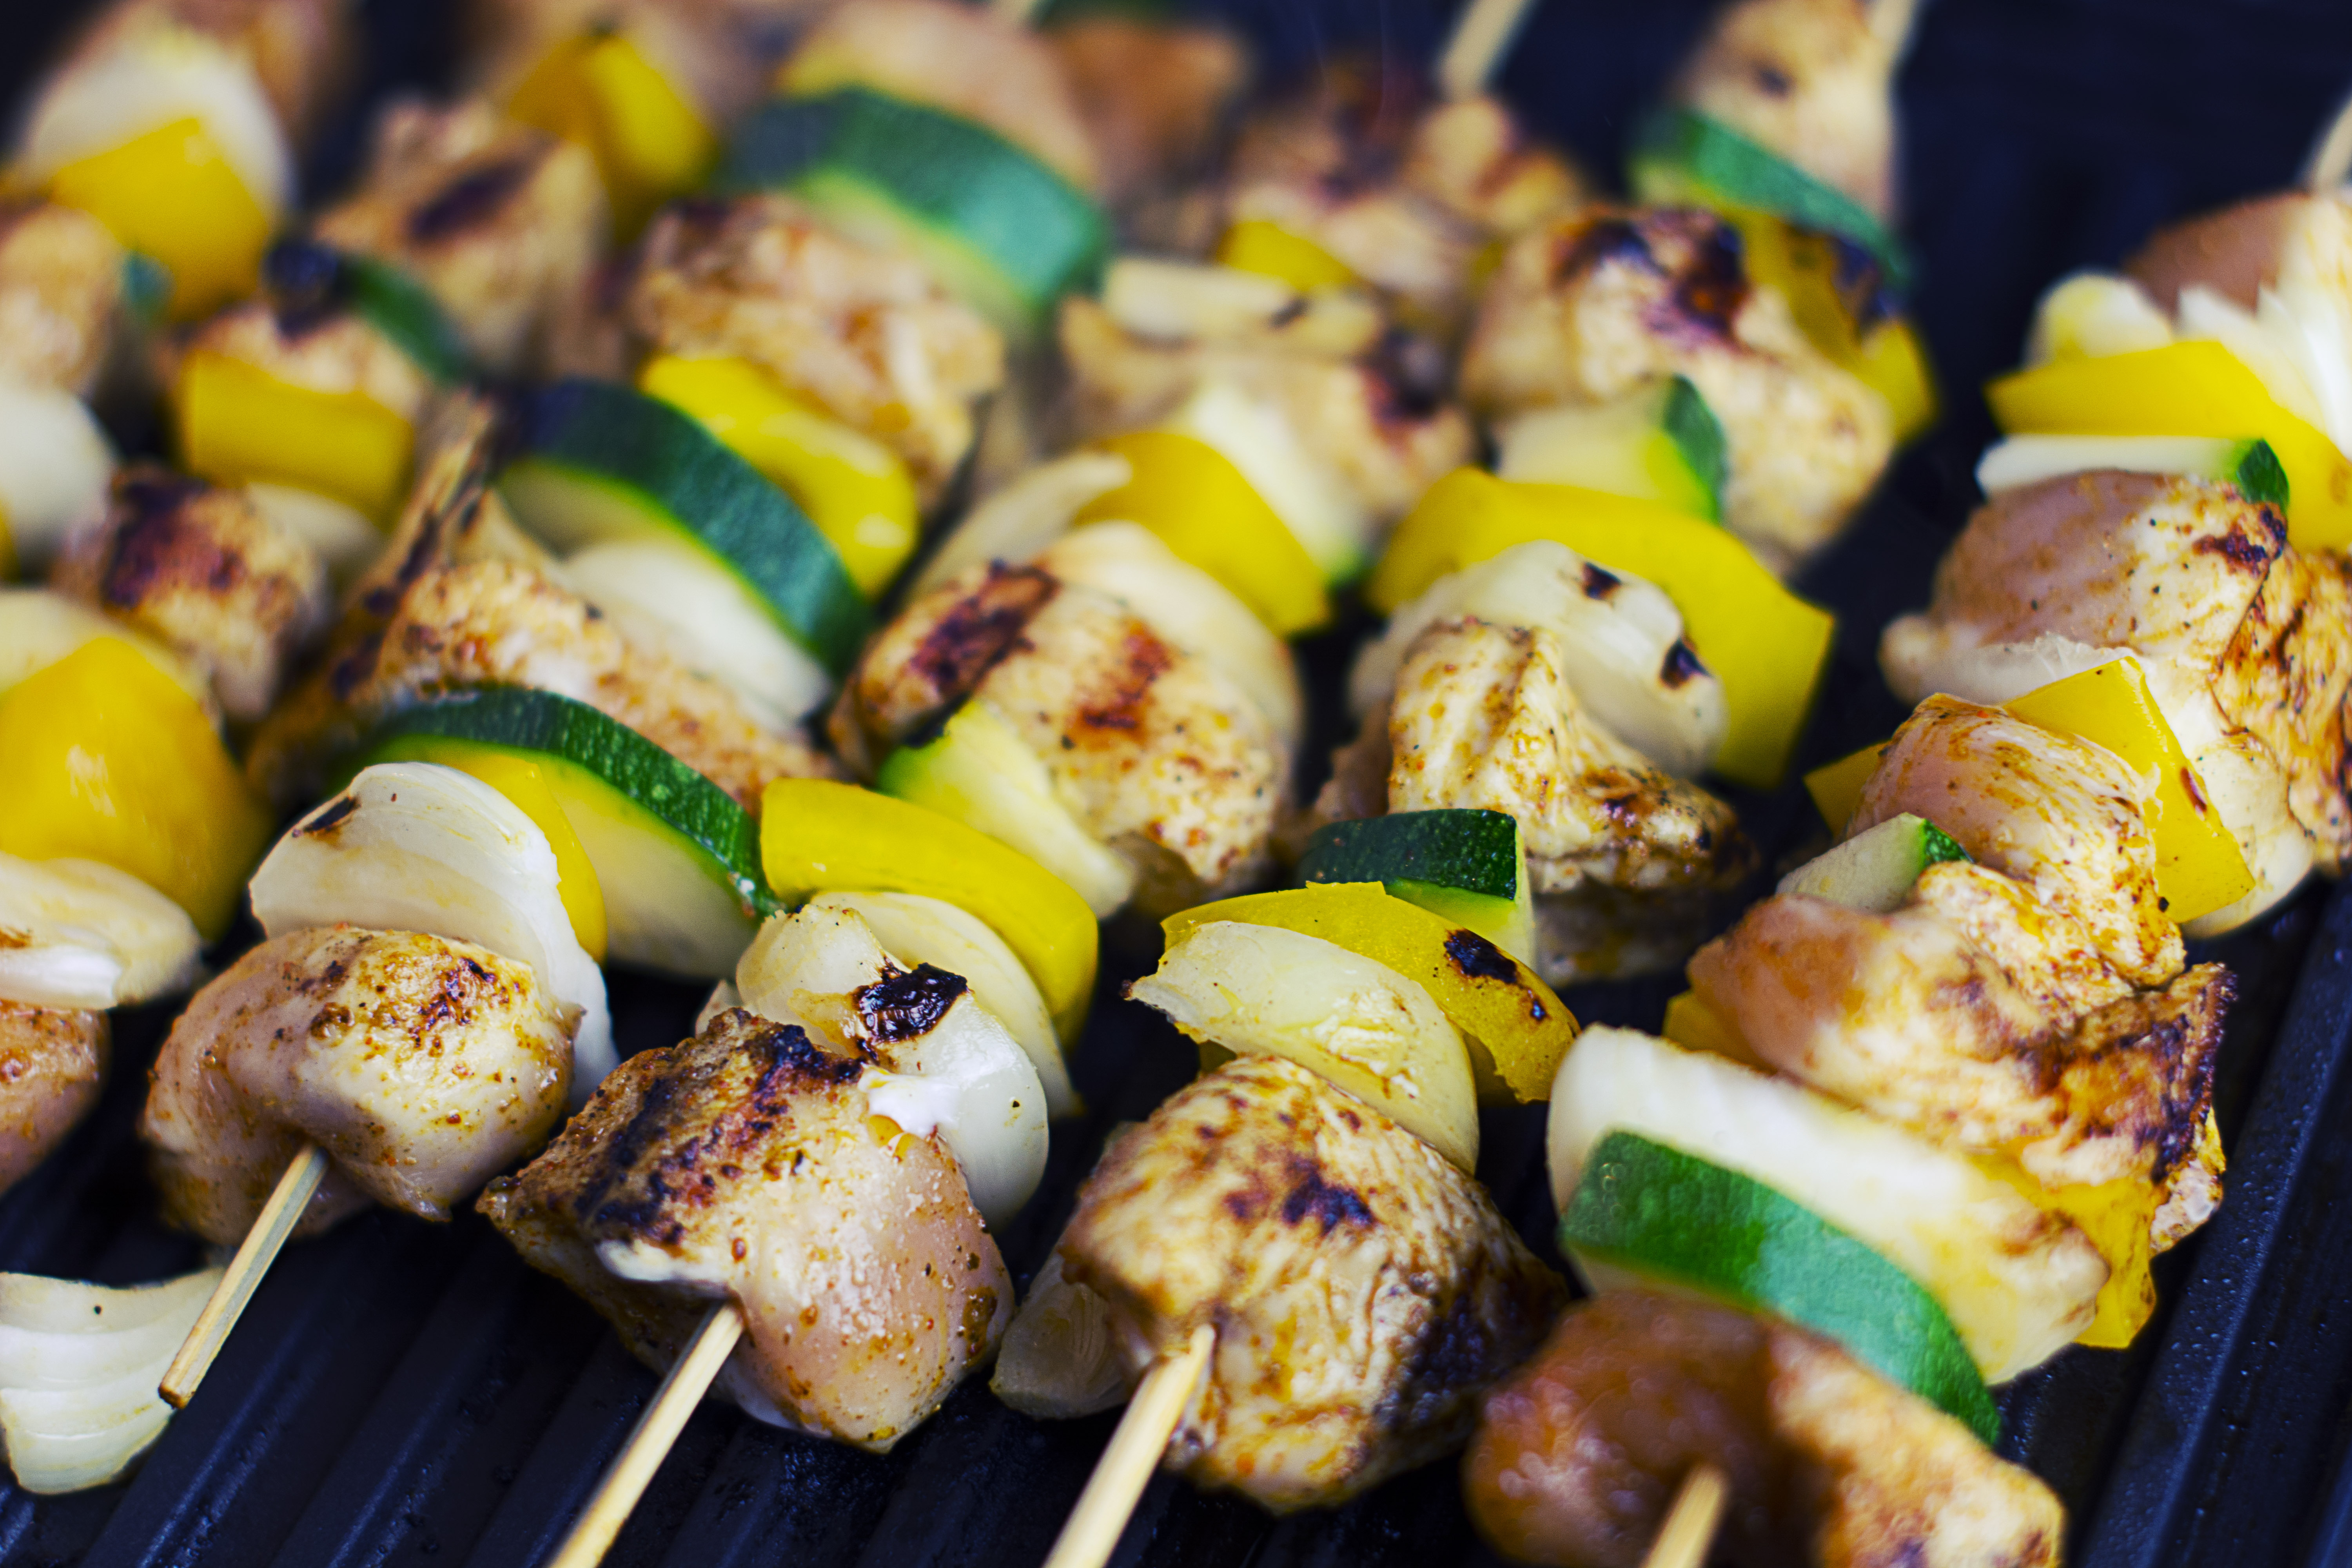 Green brown and black bar b q free stock photo for Food for bar b q